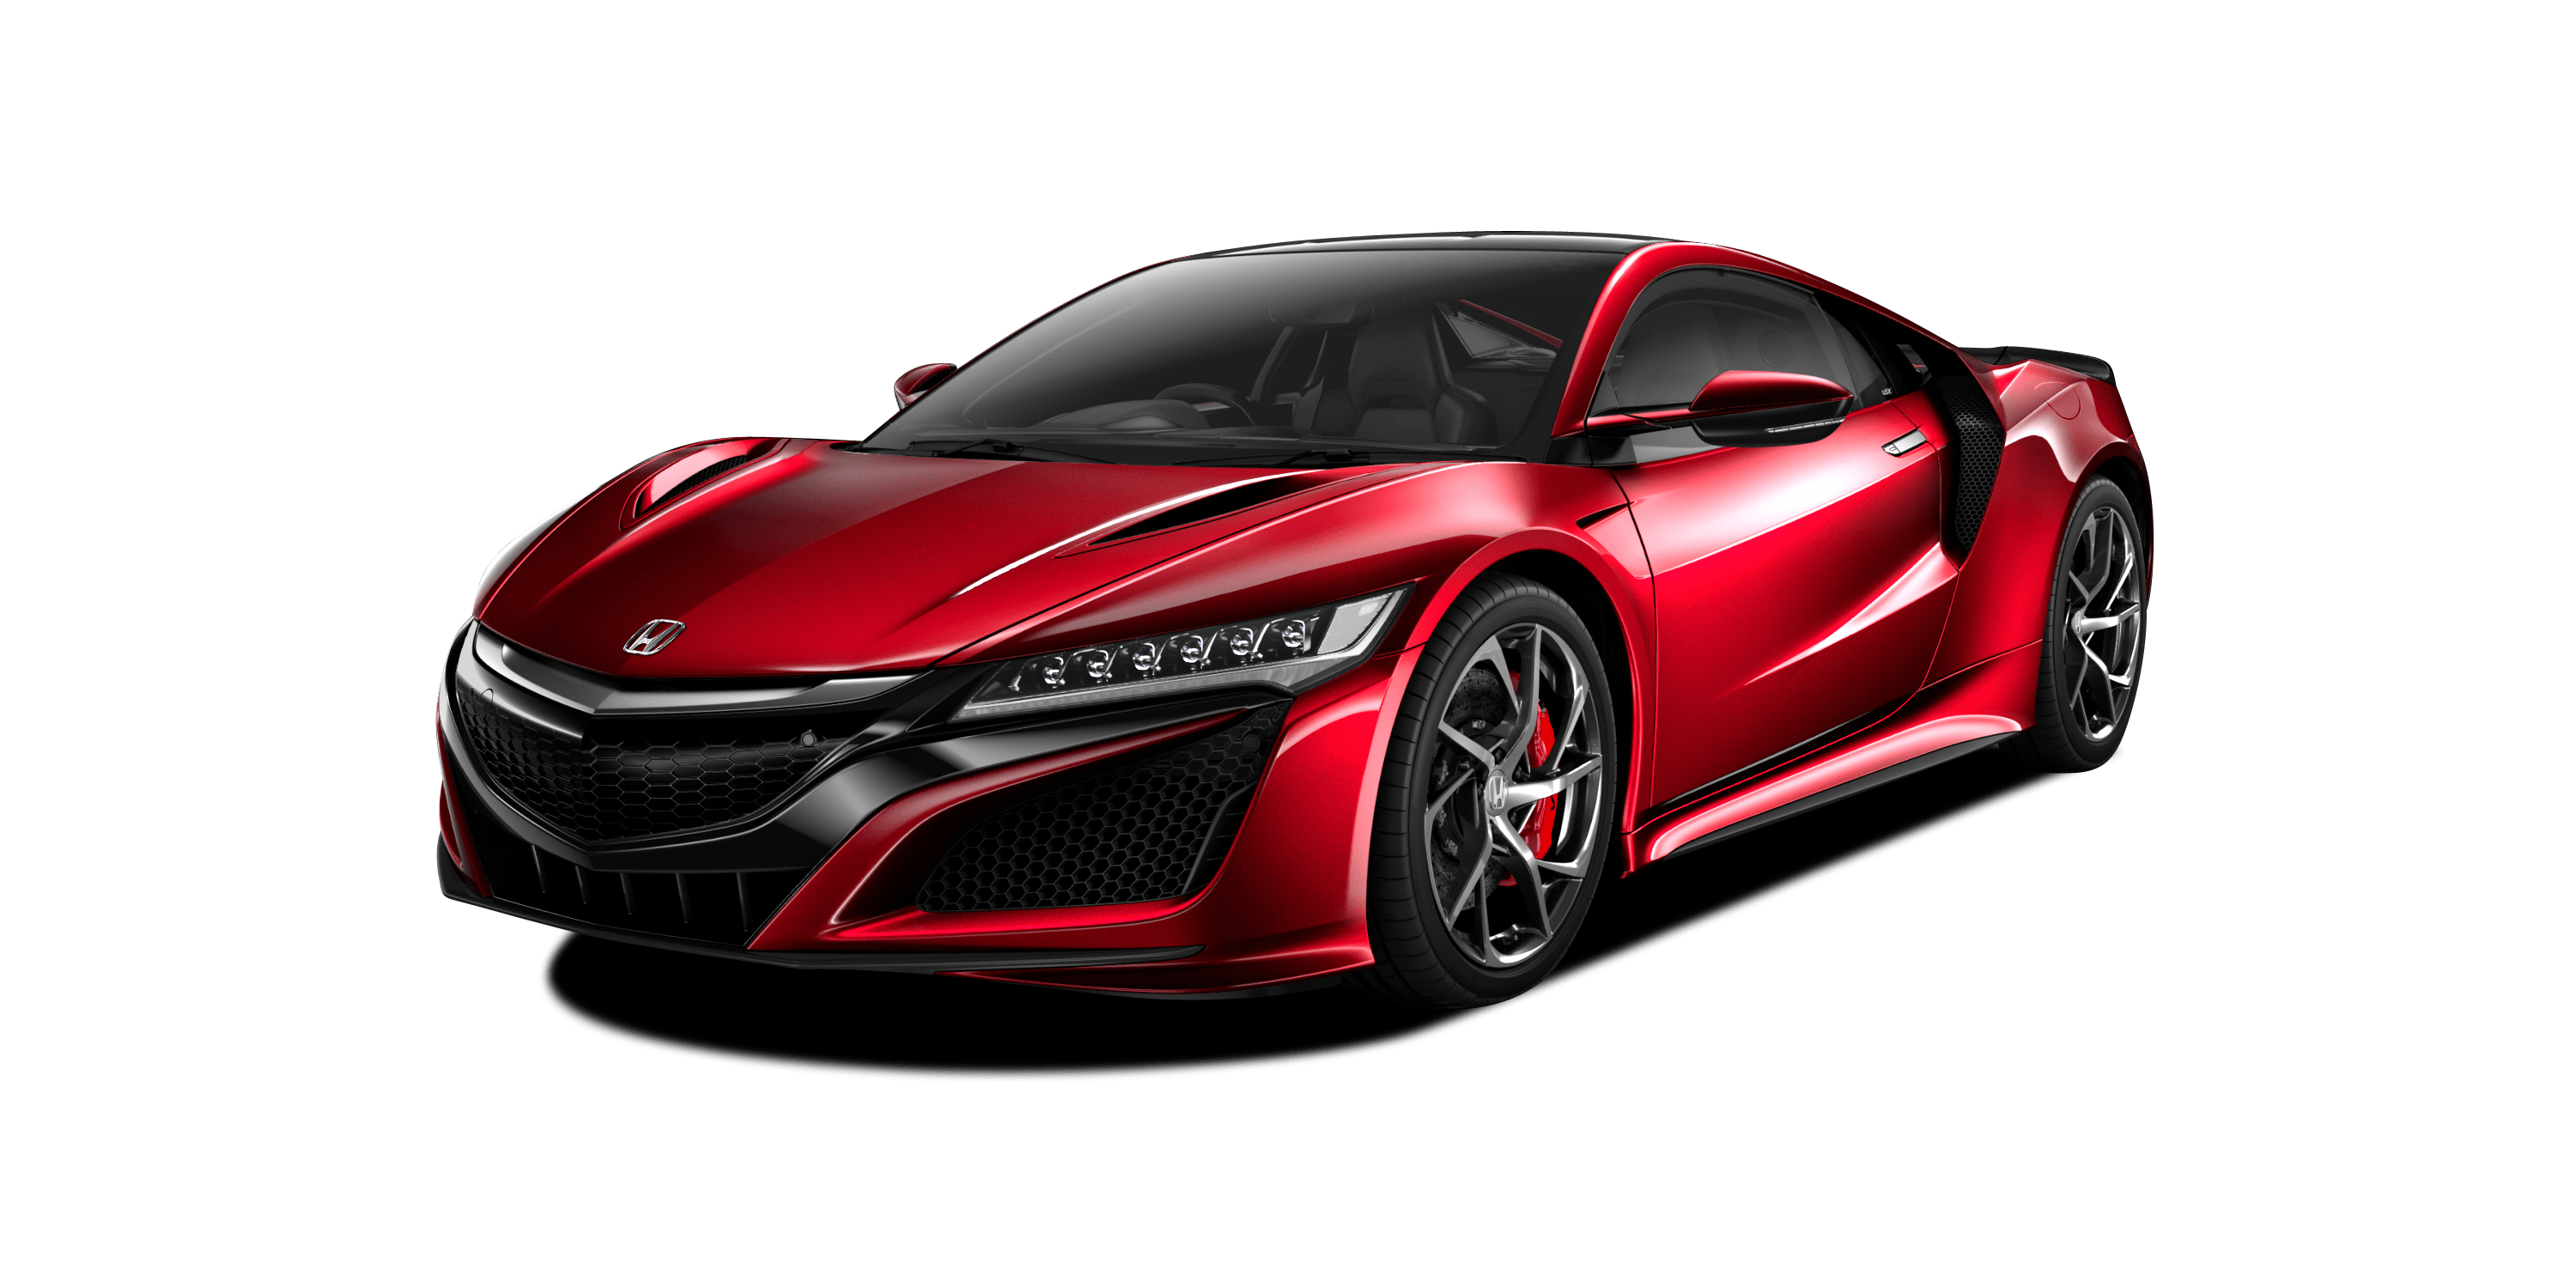 Honda Nsx Review For Sale Price Colours Specs In Australia Carsguide